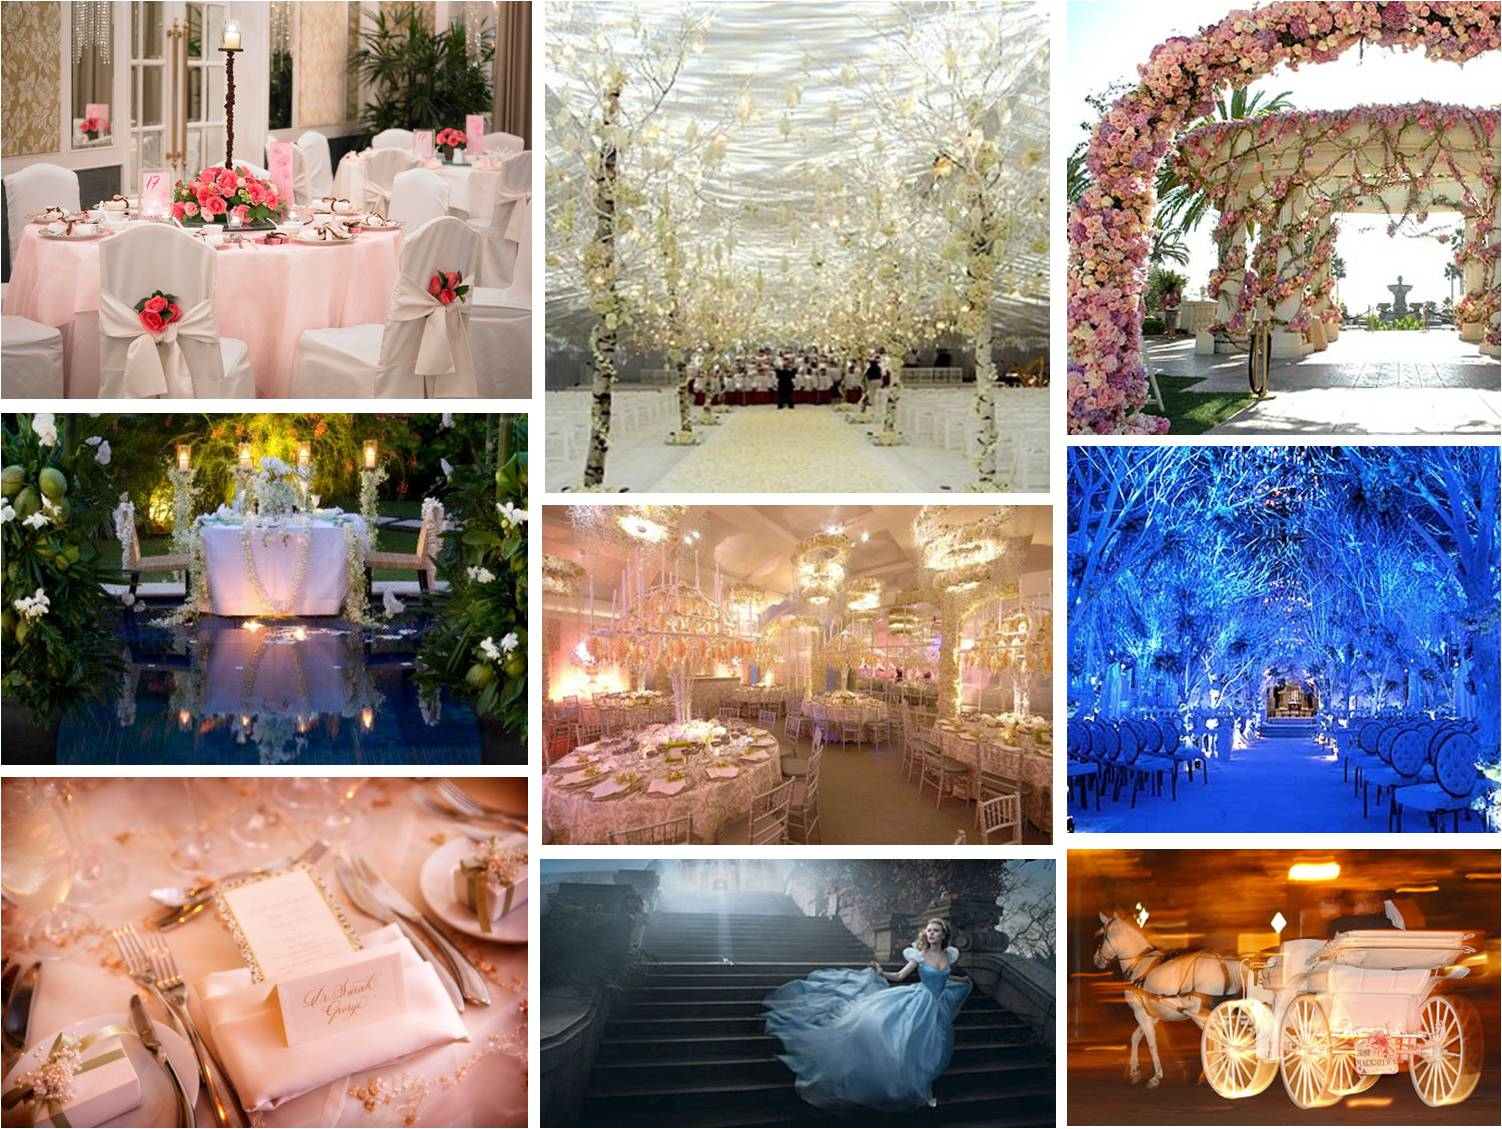 Inspiring Wedding Themes Decorations Pictures Design Ideas Dievoon